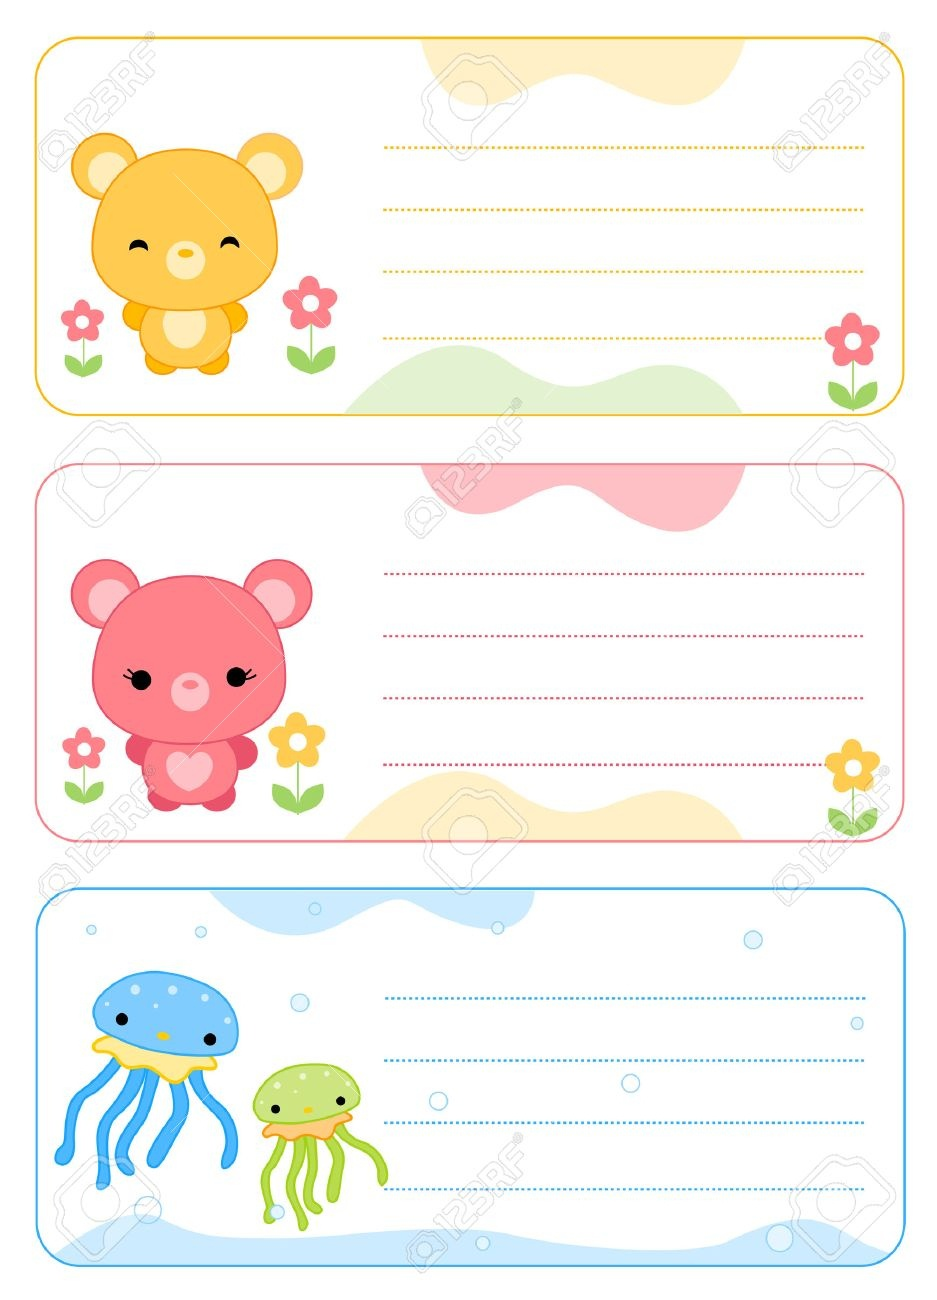 Cute Printable Name Tags / Name Cards For Kids Illustration Isolated - Free Printable Name Labels For Kids